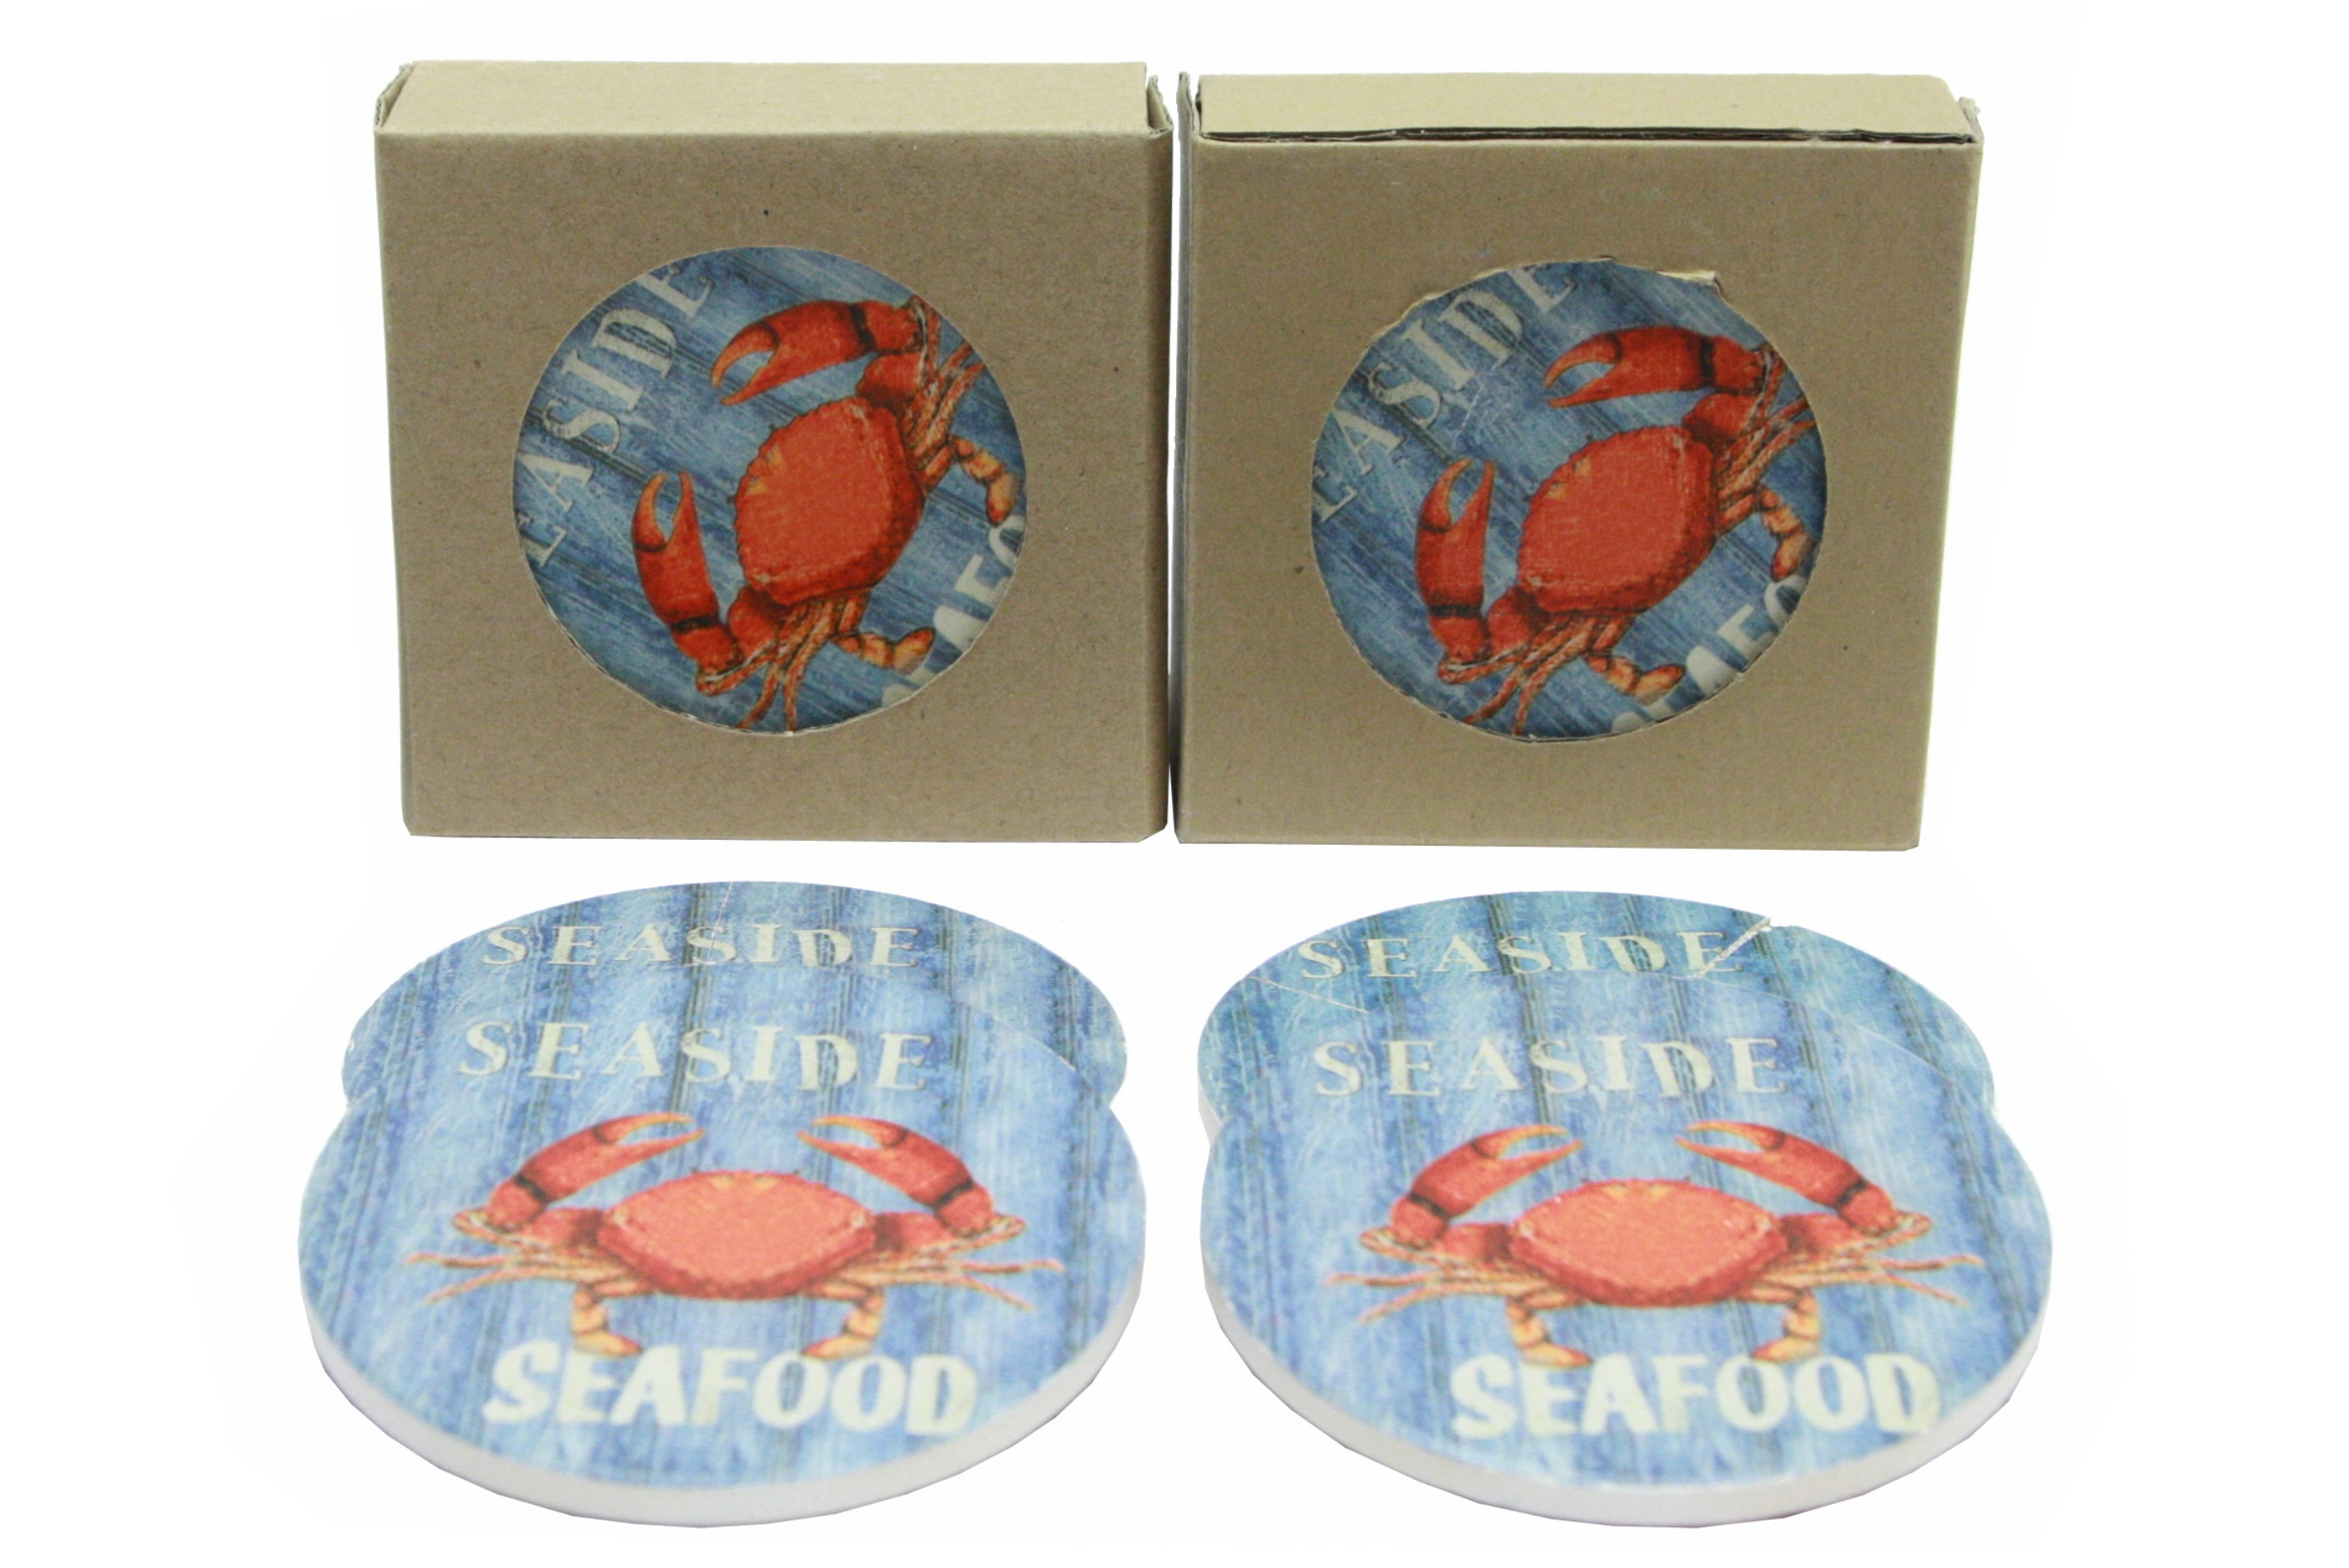 Crab Design Coasters Set Of 4 In Window Gift Box